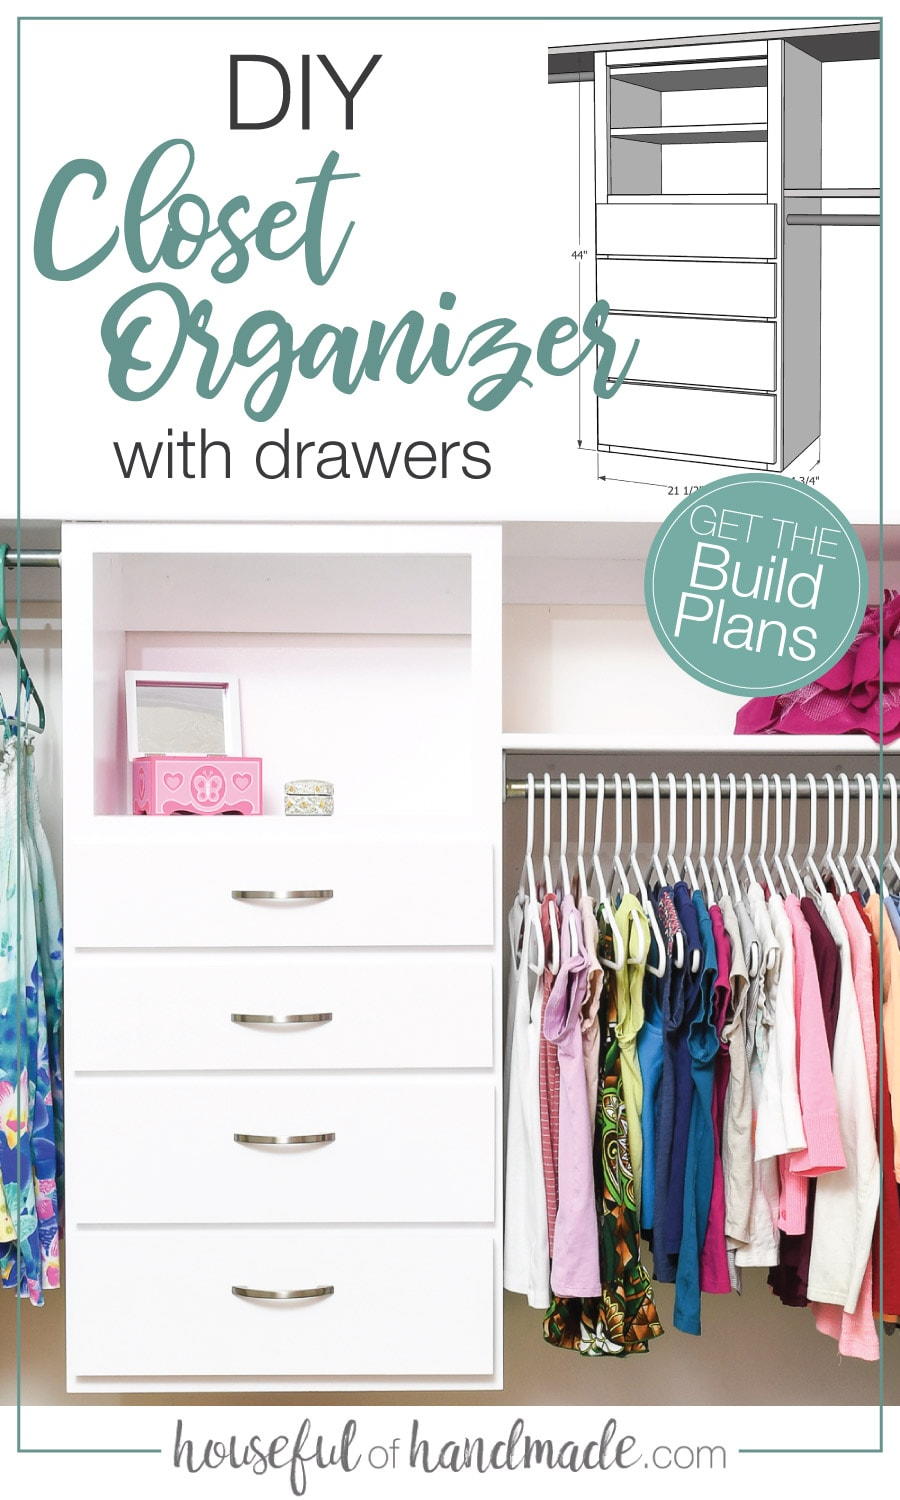 Closet Organizer Plans : closet, organizer, plans, Build, Closet, Organizer, Organization, Plans,, Organizing, Systems